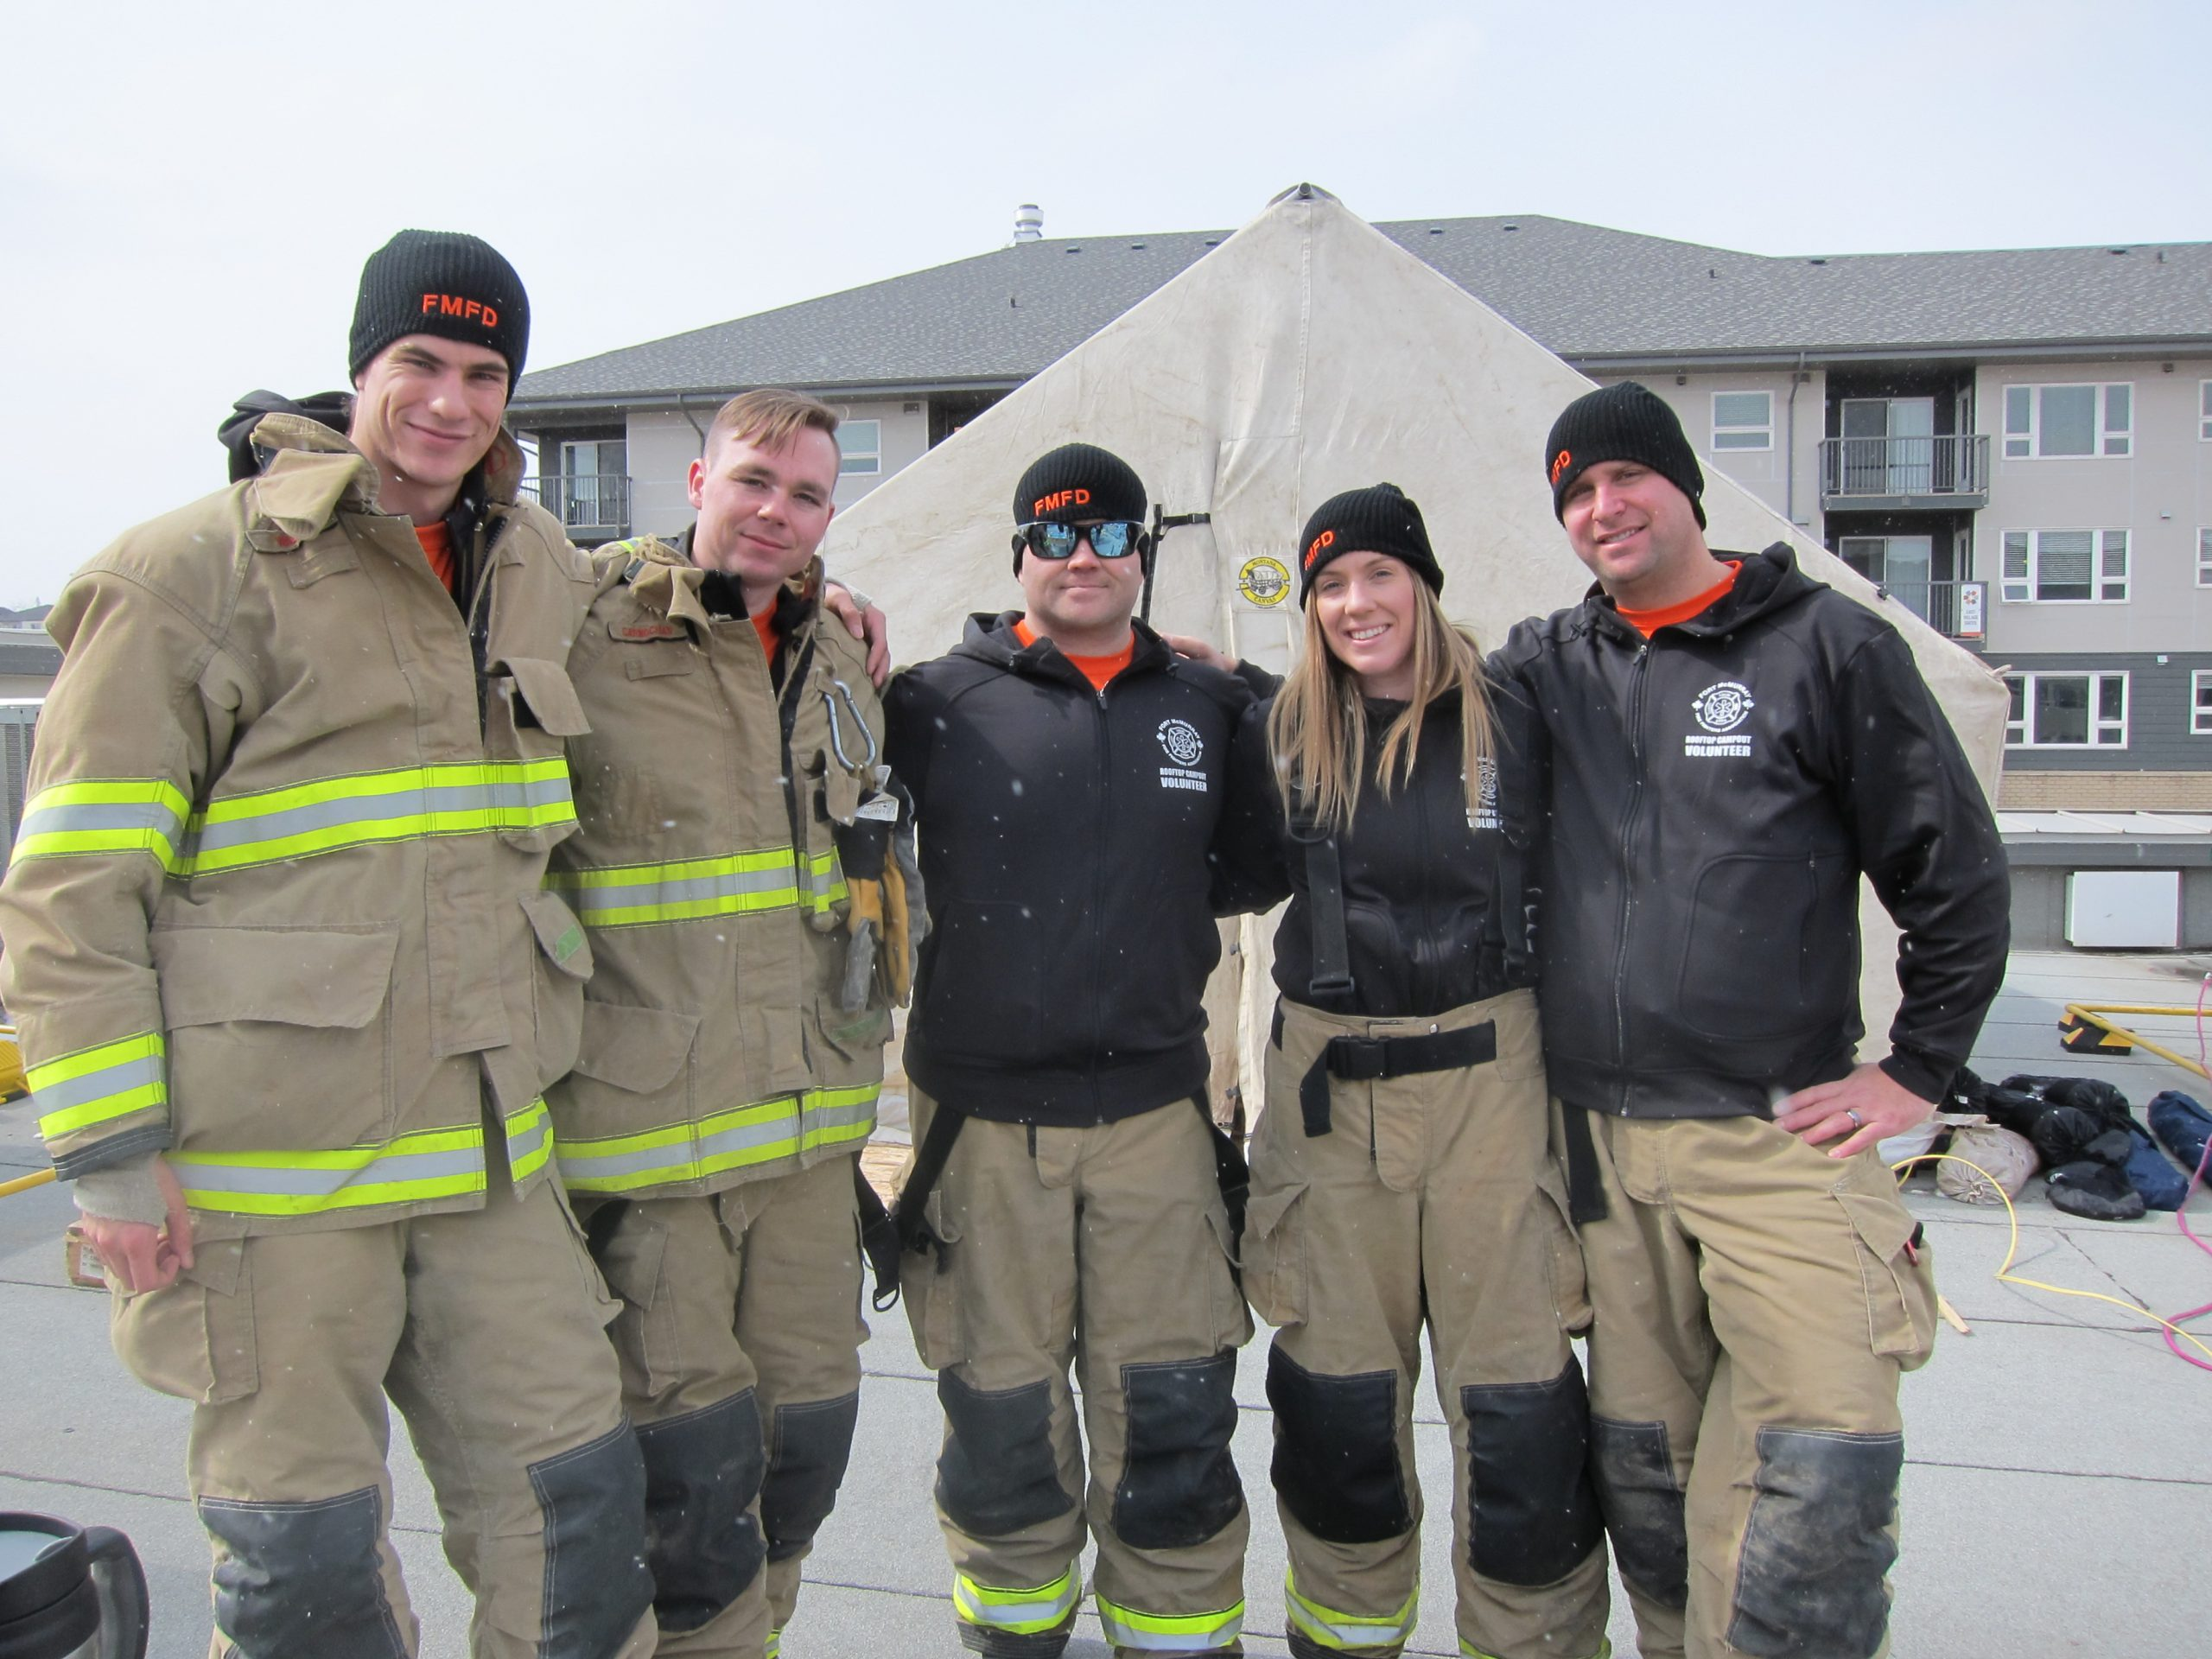 Firefighters Begin 100 Hour Rooftop Campout